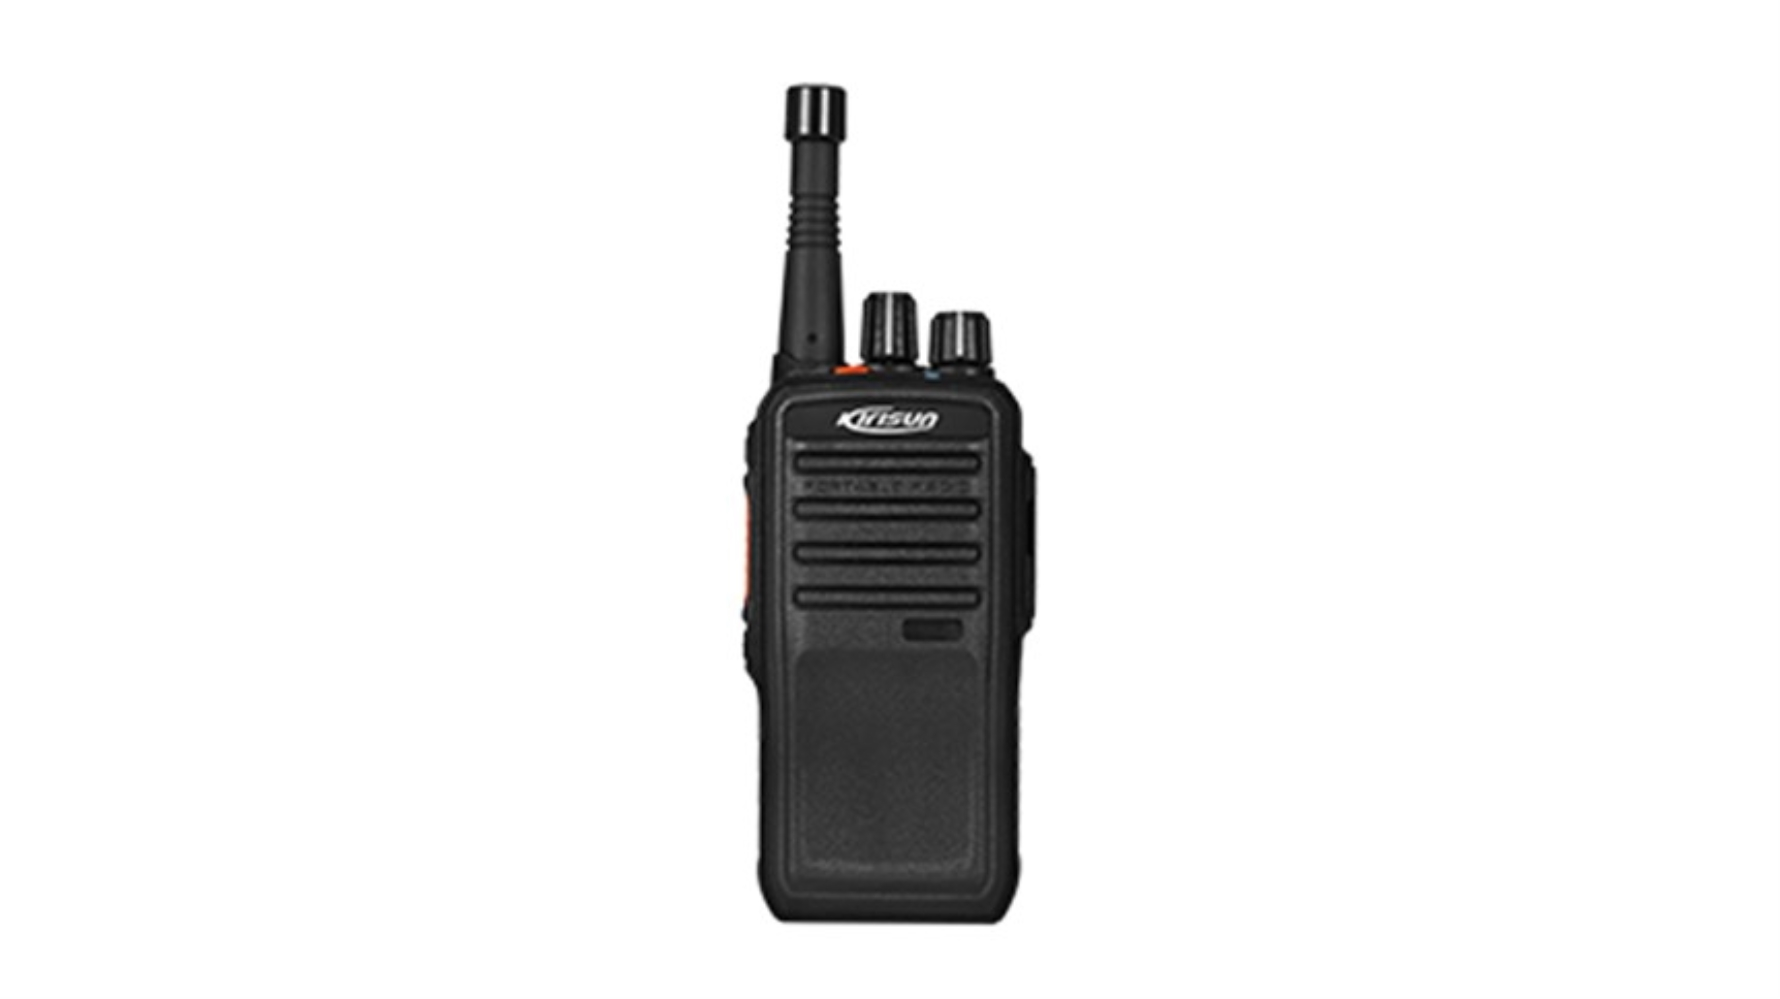 photo of Kirisun W65 Push to talk (ptt) over wi-fi / cellular, portable two way radio